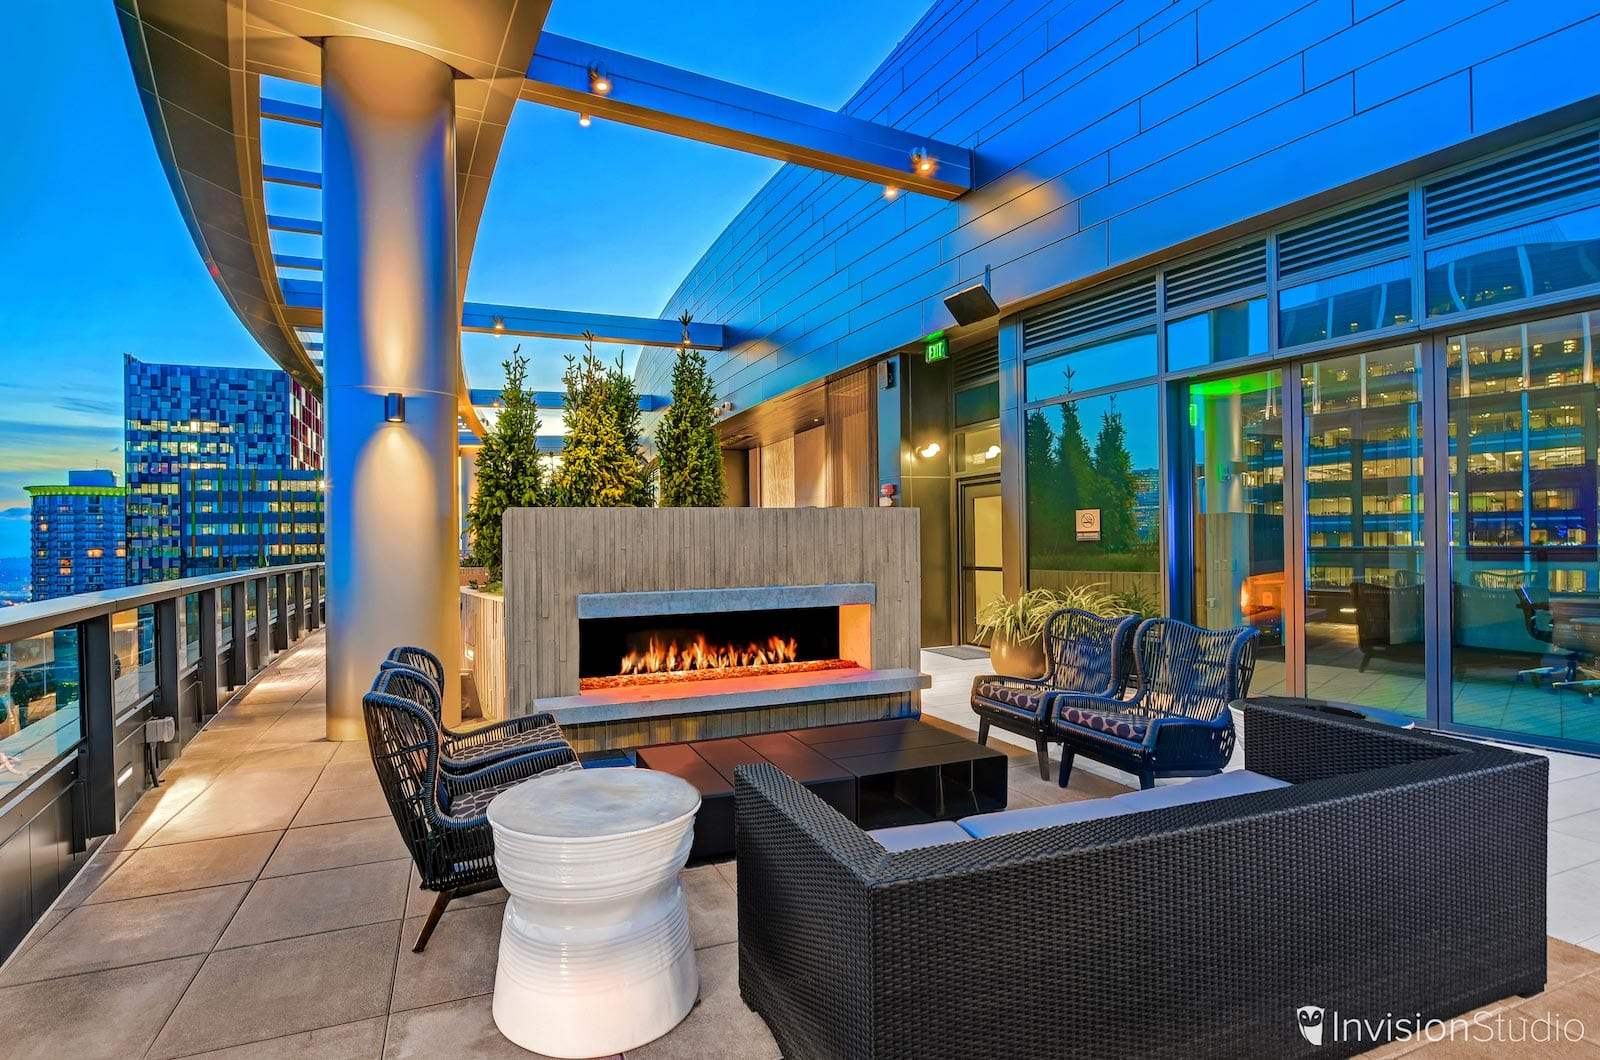 Modern Outside Patio in Los Angeles Los Angeles Virtual Tour Photographer | Los Angeles Commercial Real Estate Photography Services | Los Angeles Real Estate Photographer | Los Angeles Architectural Photography Services